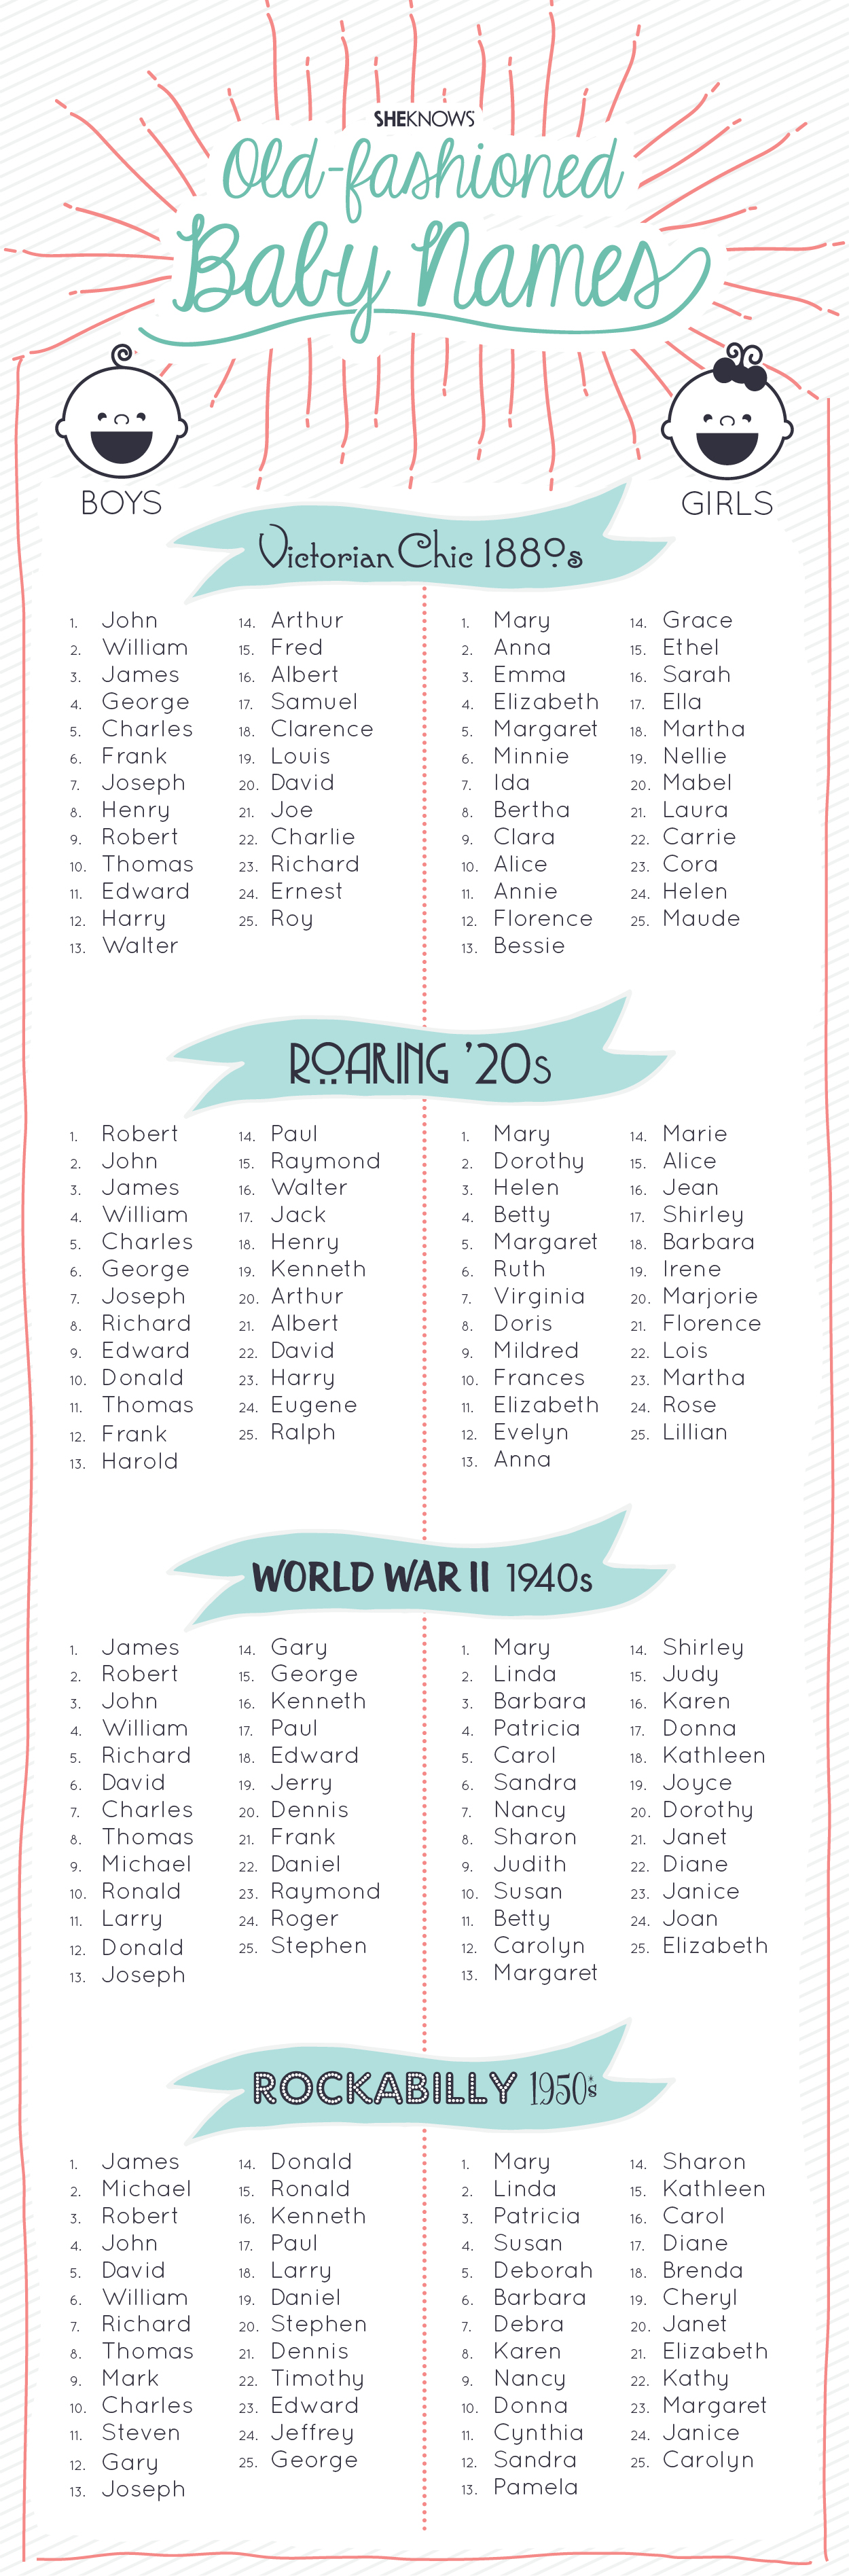 Old-fashioned boy names and girl names